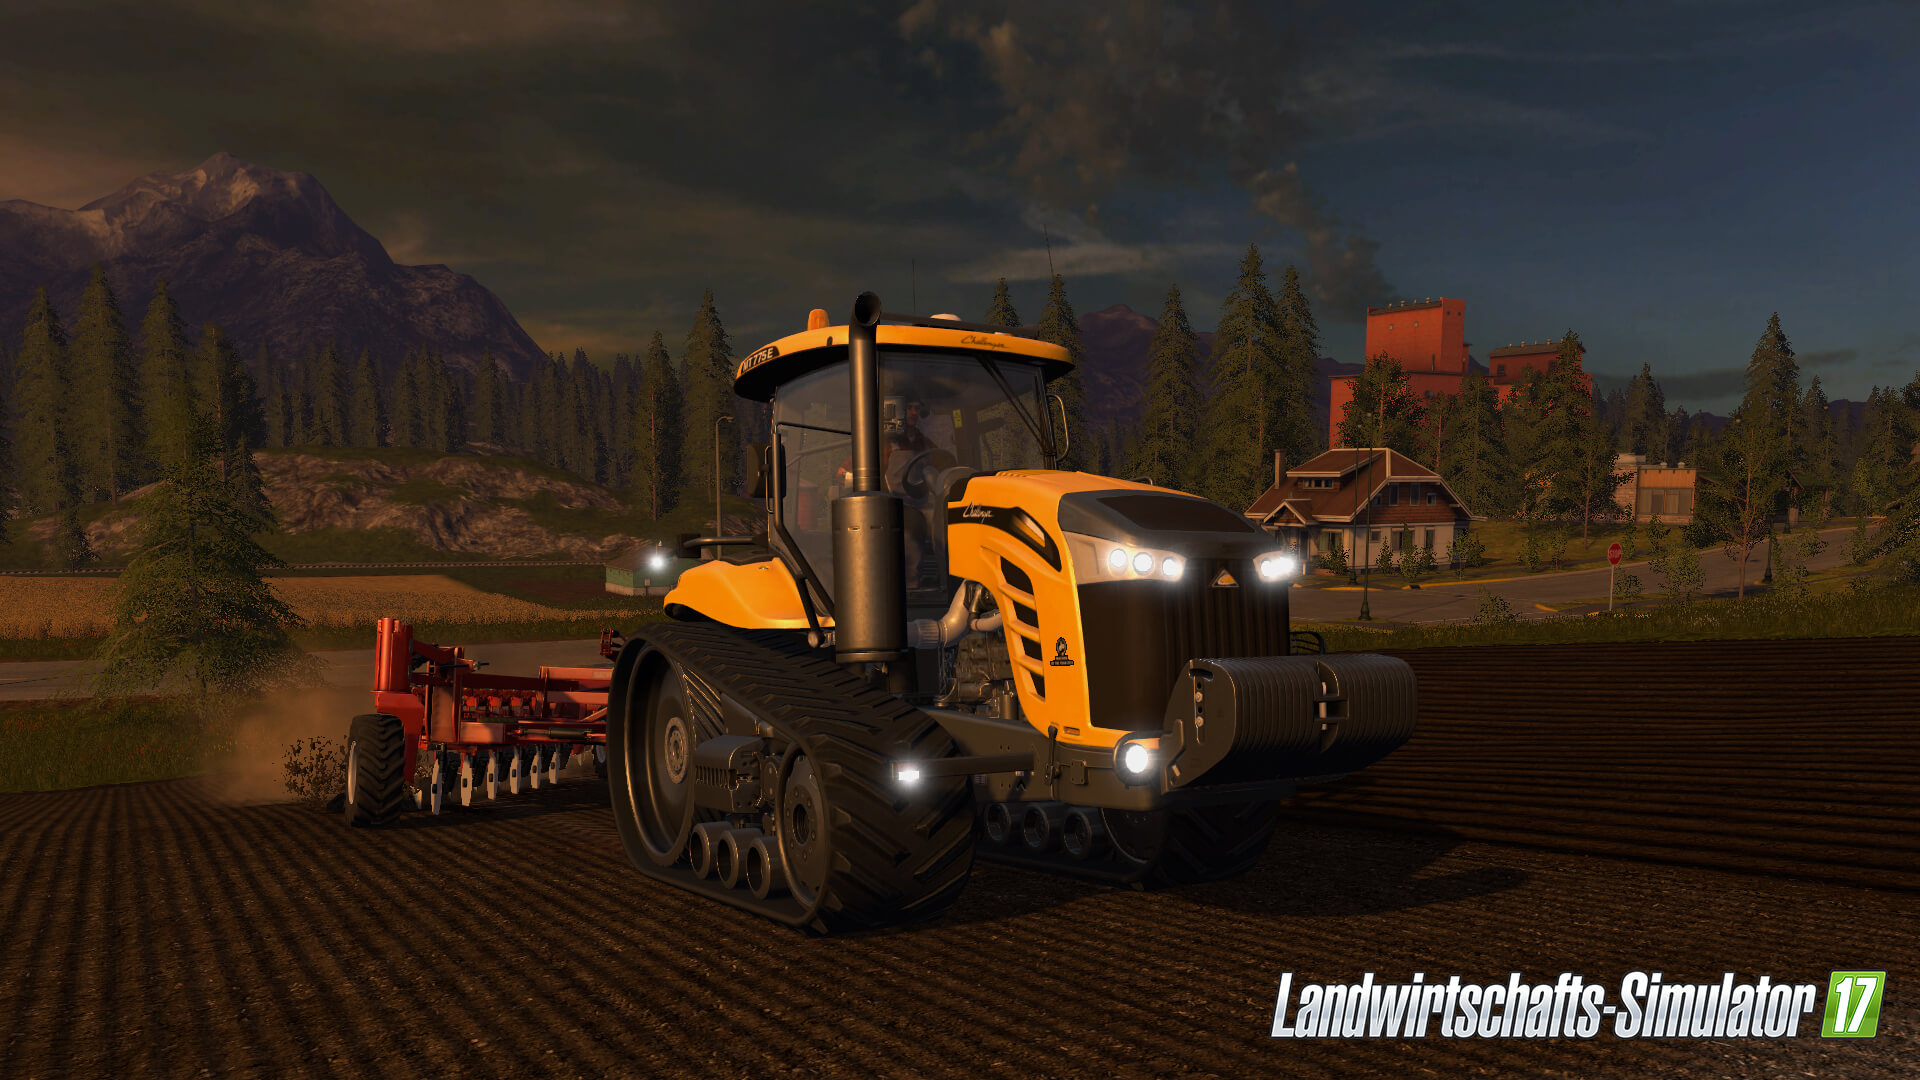 Landwirtschafts-Simulator 17 (Bildrechte: Focus Home Entertainment)